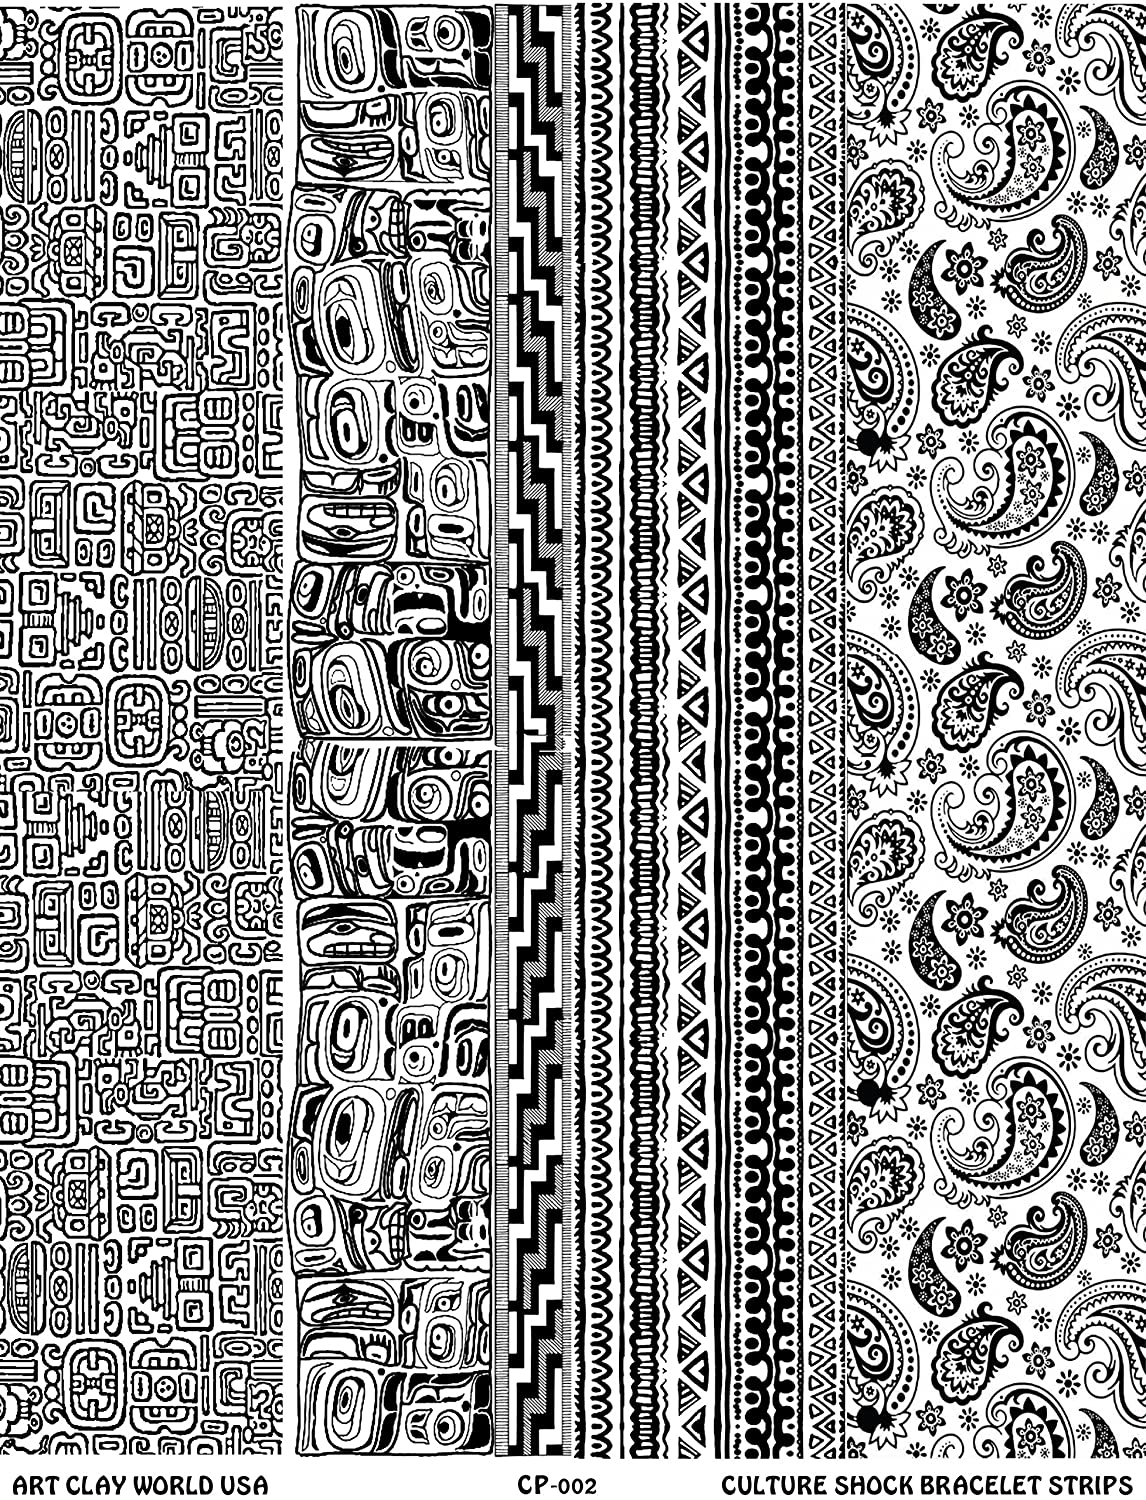 Culture Shock Full Length Texture Sheet, 10in x 2in each of Mayan Ruins, Northwest Native, Woven Cloth, and Paisley. Art Clay World USA 4336838910